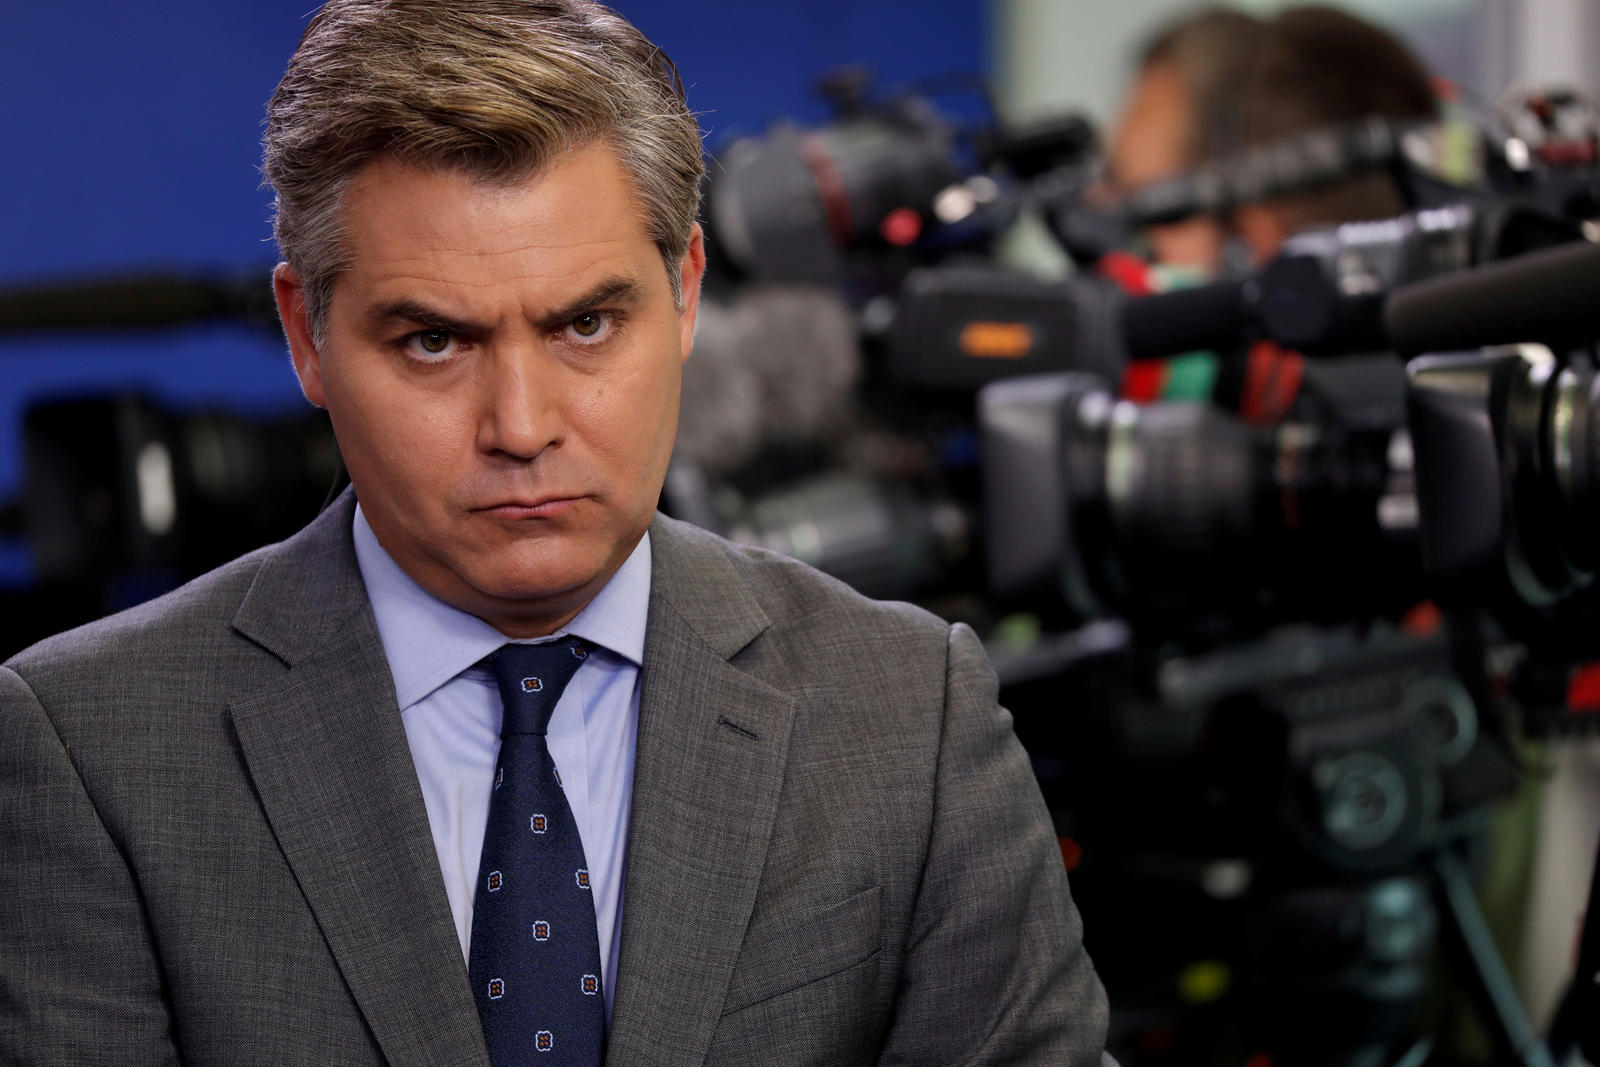 cnn journalist jim acosta - 1000×667